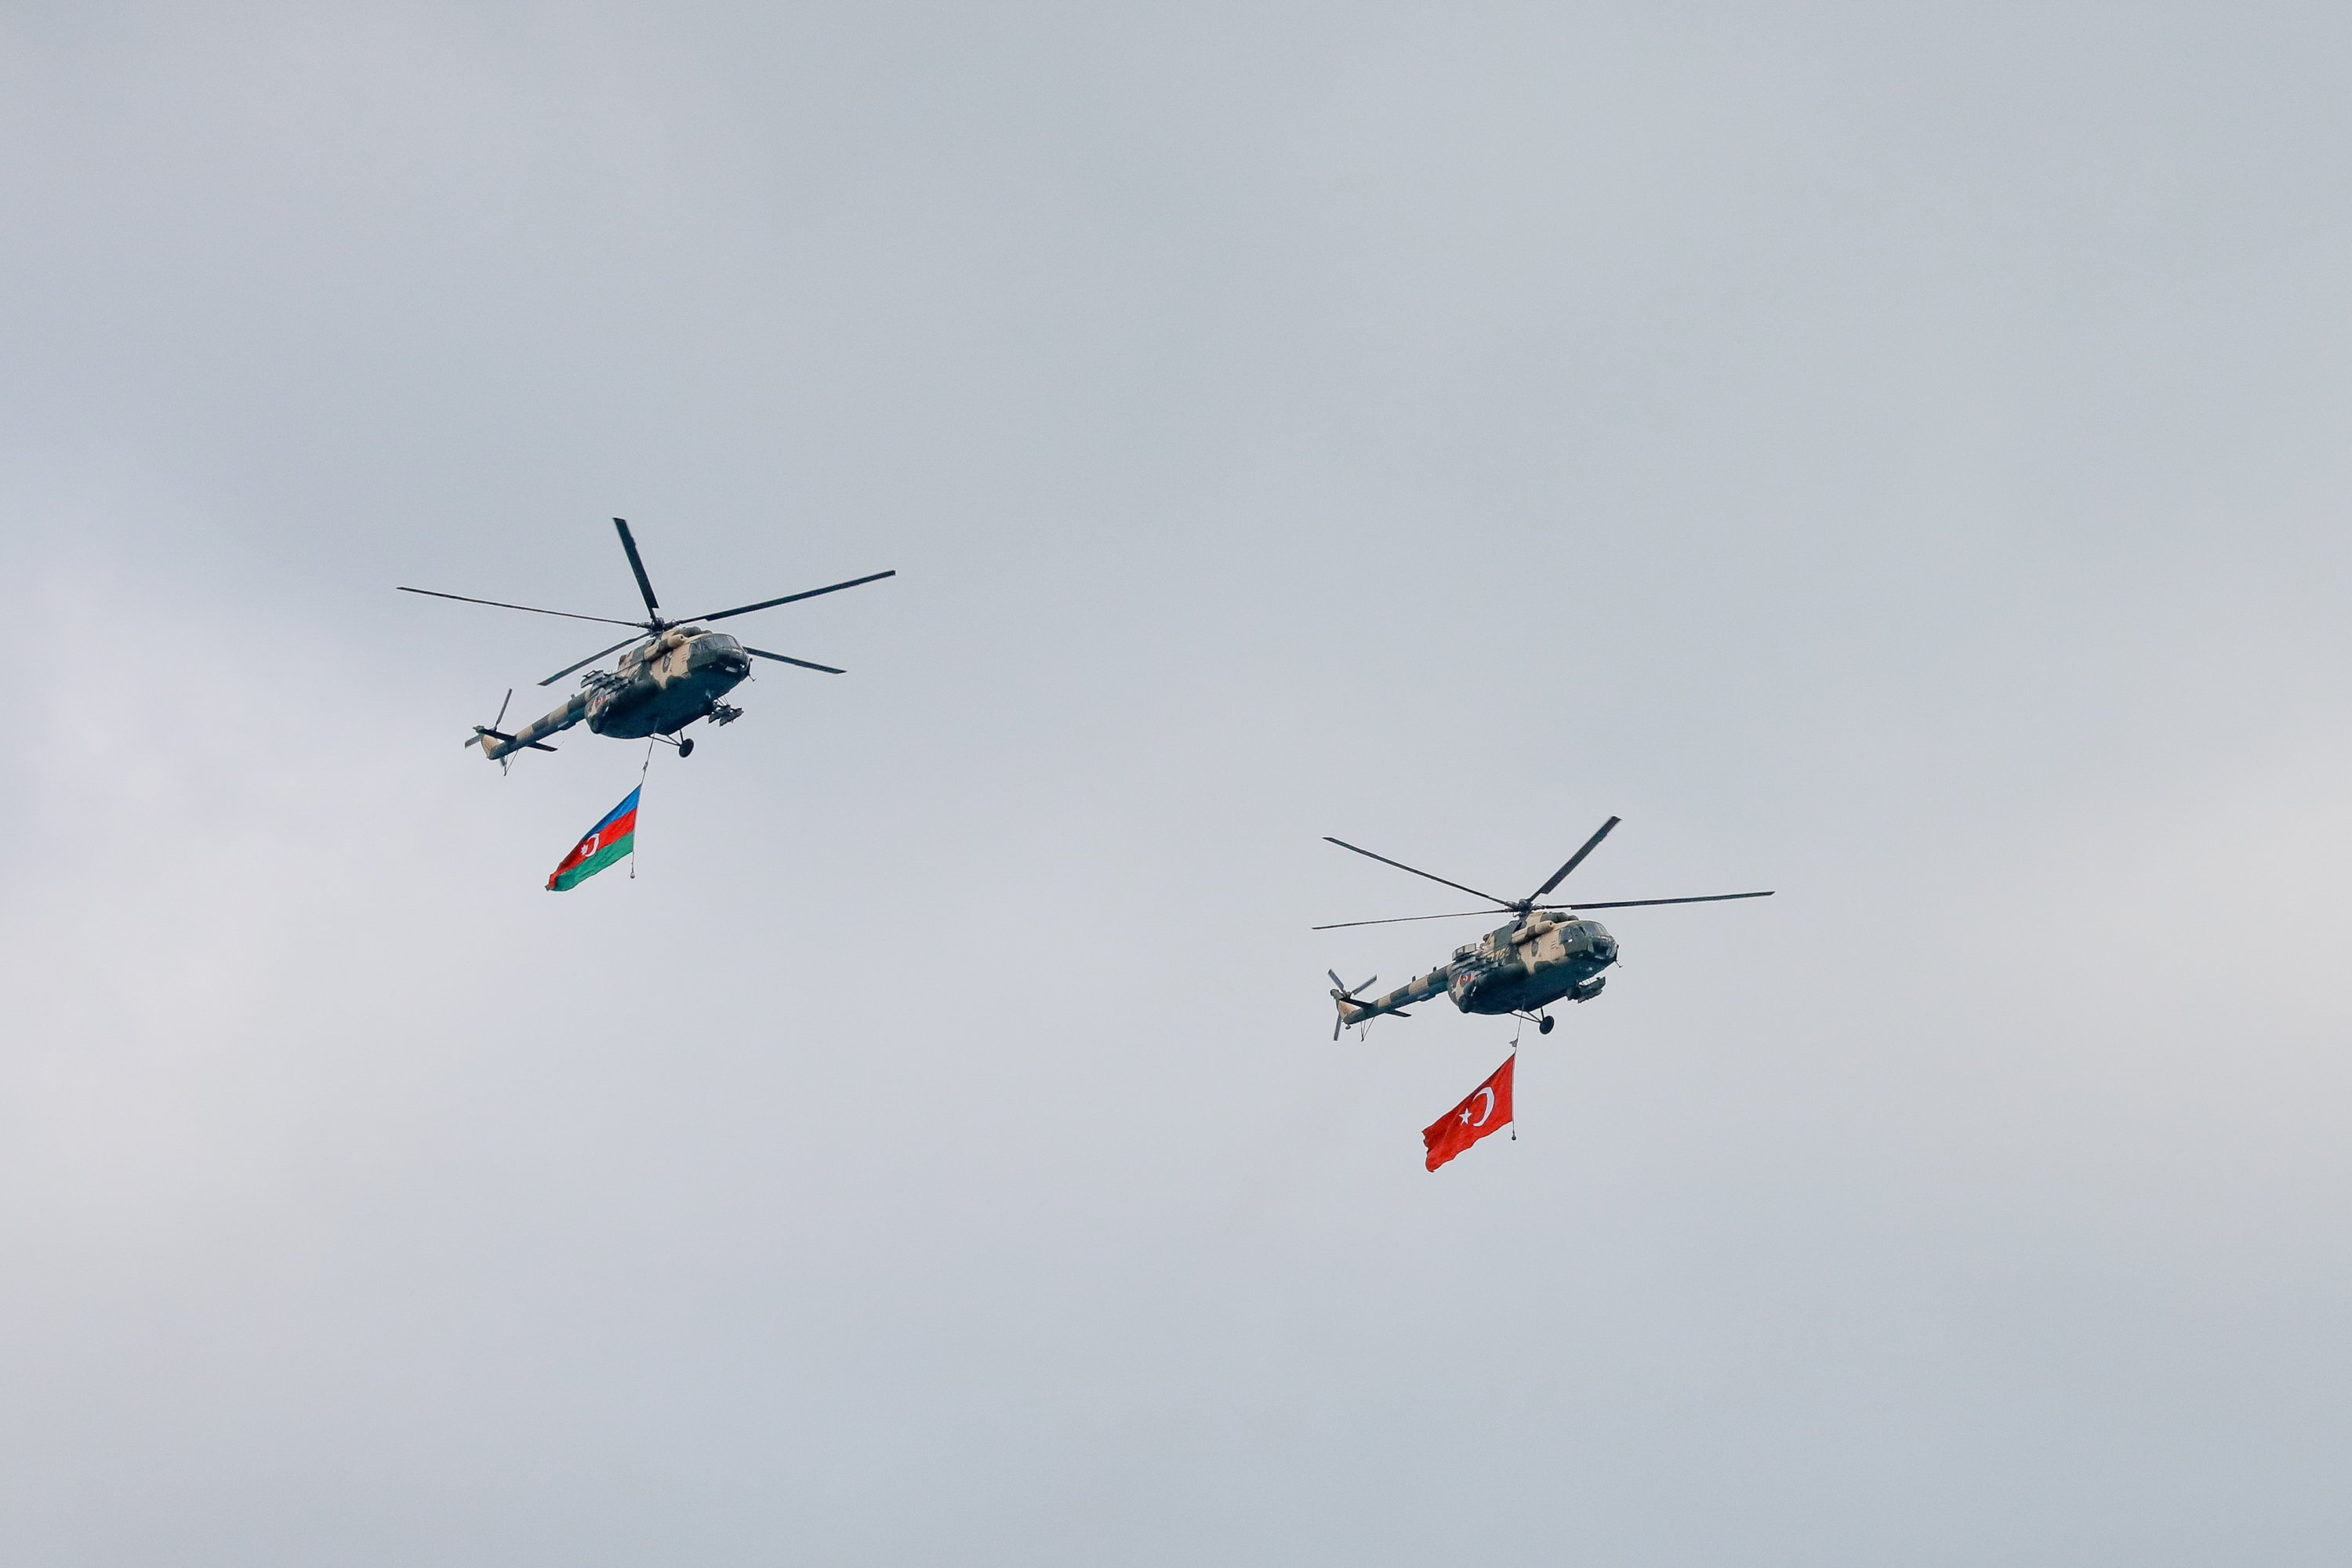 Mil Mi-17 military transport helicopters with the flags of Azerbaijan (L) and Turkey (R) are seen in flight during a military parade marking the end of the Nagorno-Karabakh military conflict, Baku, Azerbaijan, Dec. 10, 2020. (Photo by Getty Images)